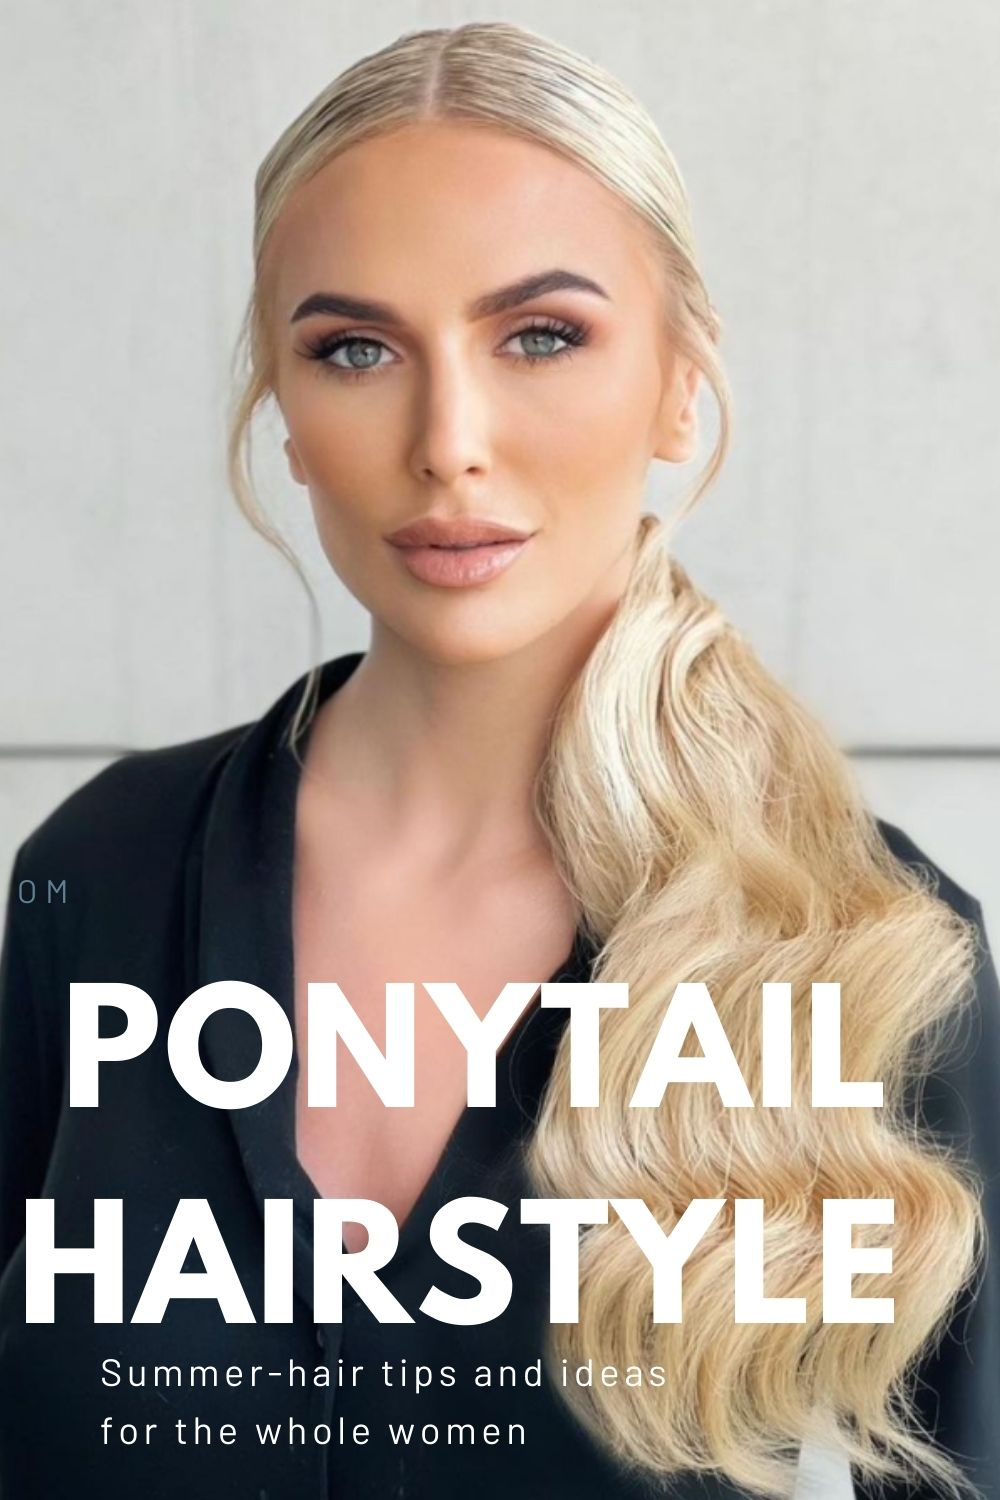 ponytail hairstyle design